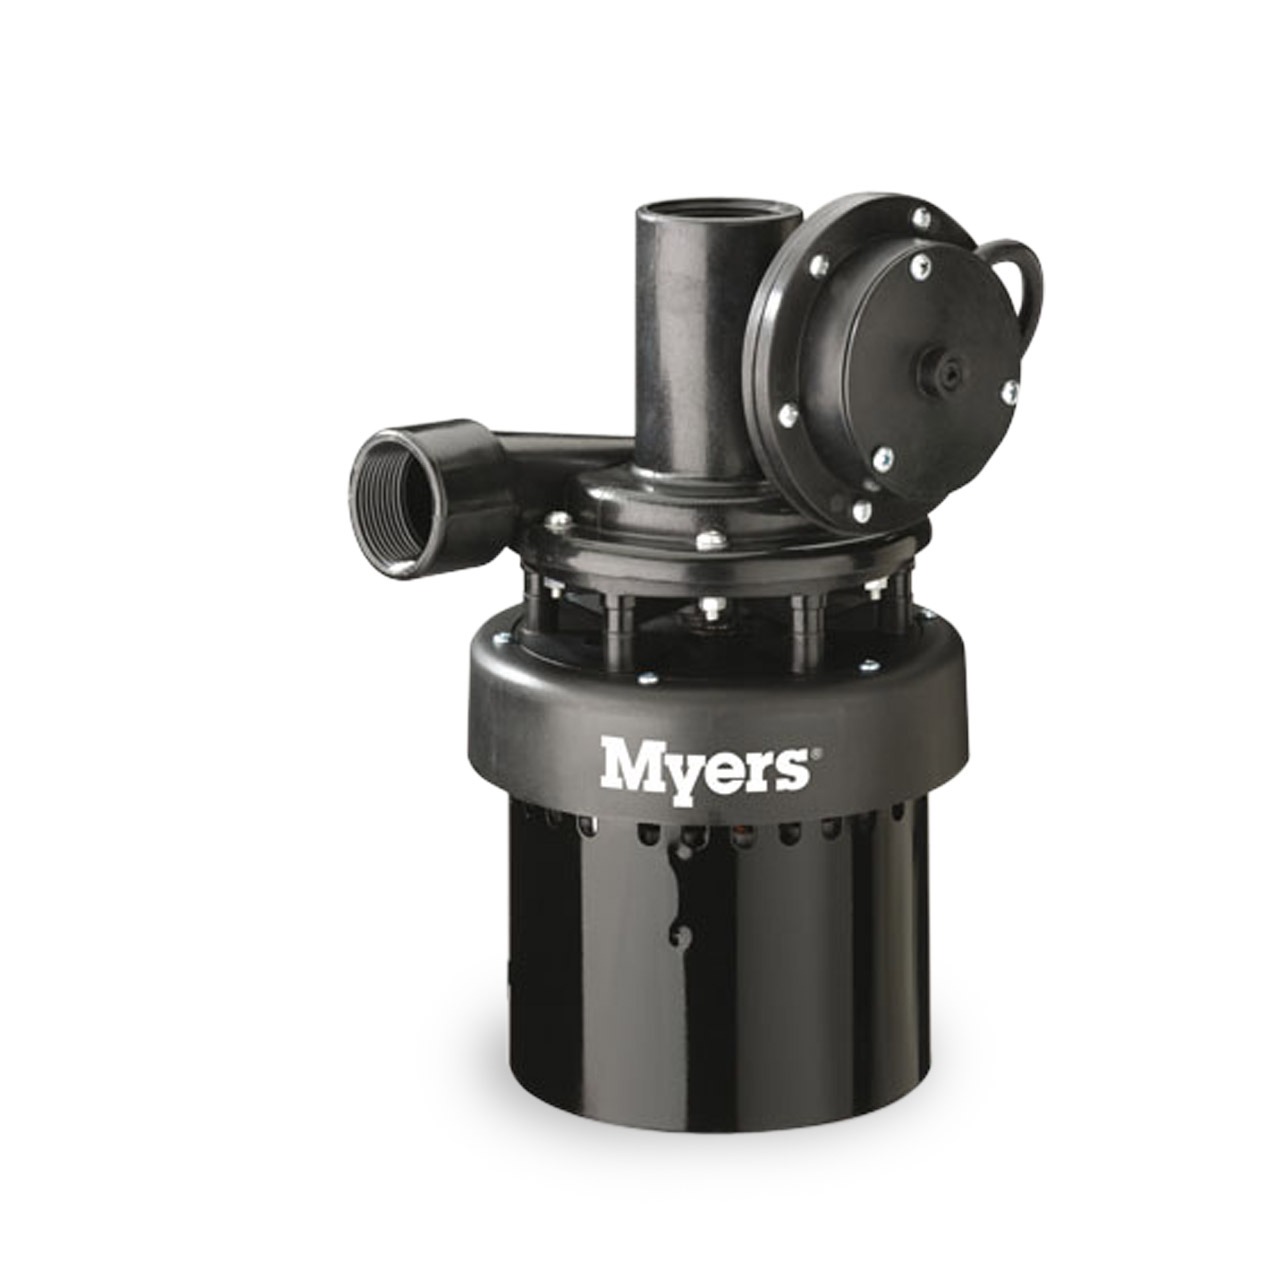 Myers Myers Musp125 Utility Sink Pump 0 33 Hp 115v